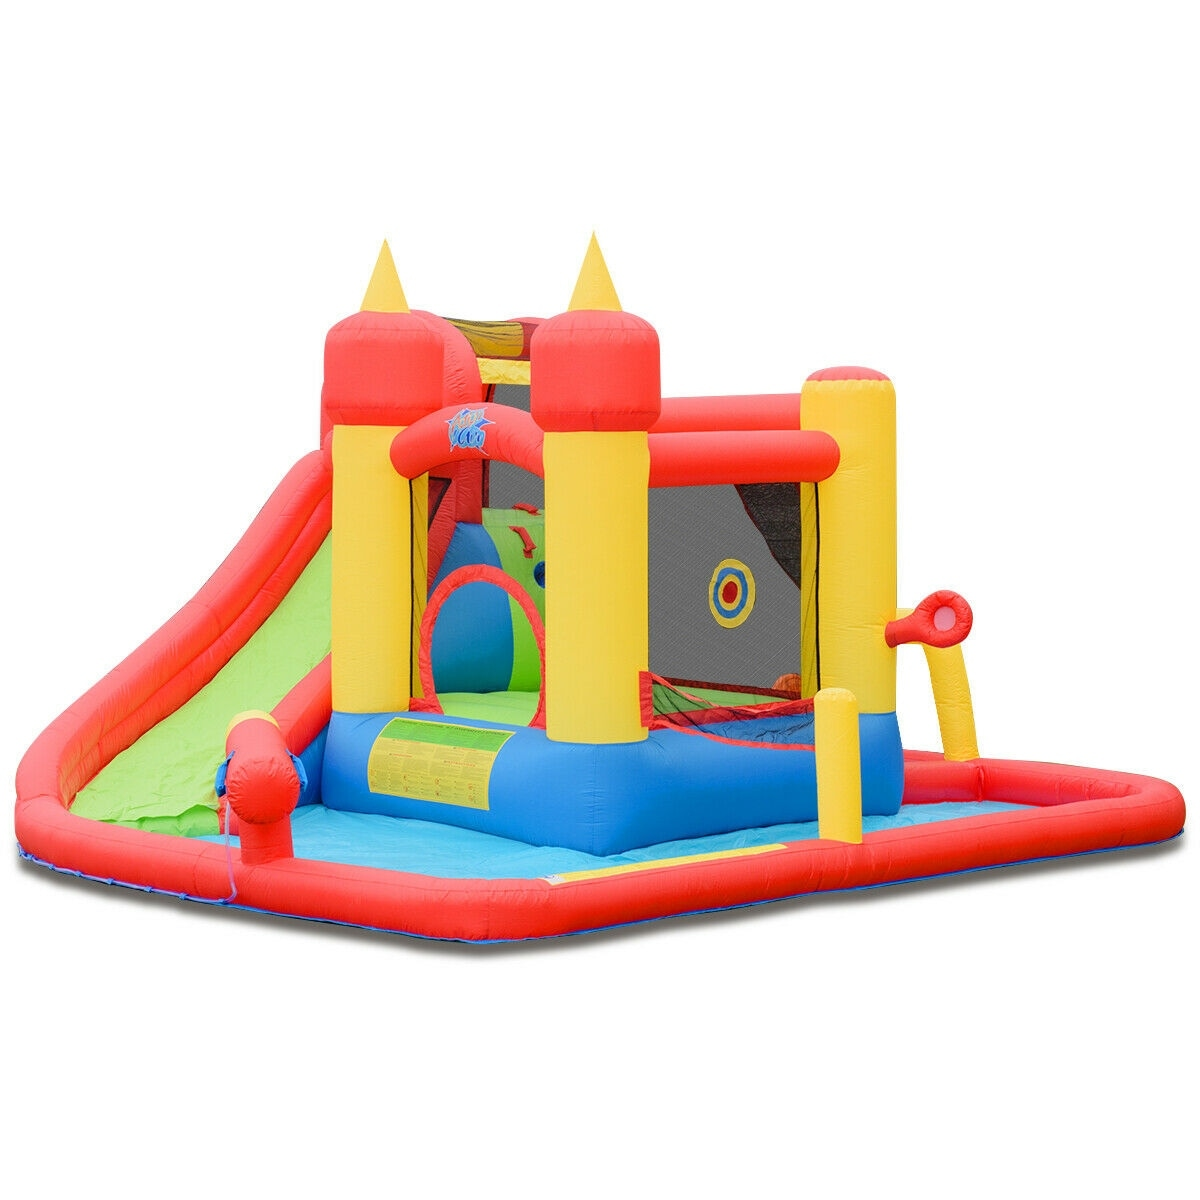 Inflatable Water Slide Jumping Bounce House With Ocean Ball Multi Overstock 30751173